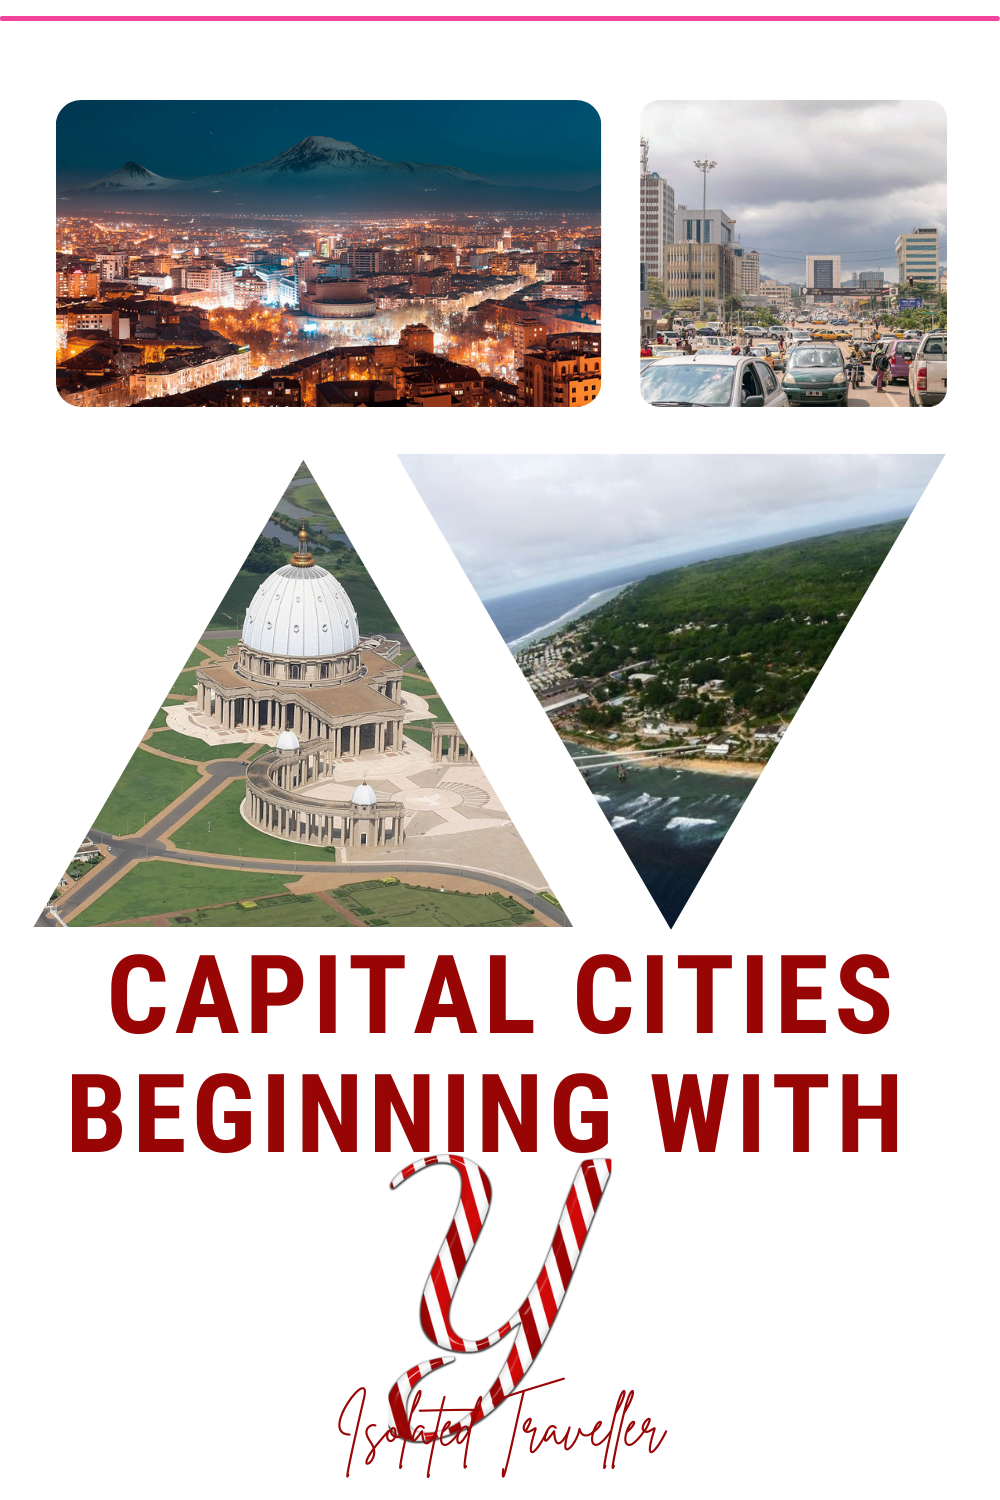 Capital Cities beginning with Y